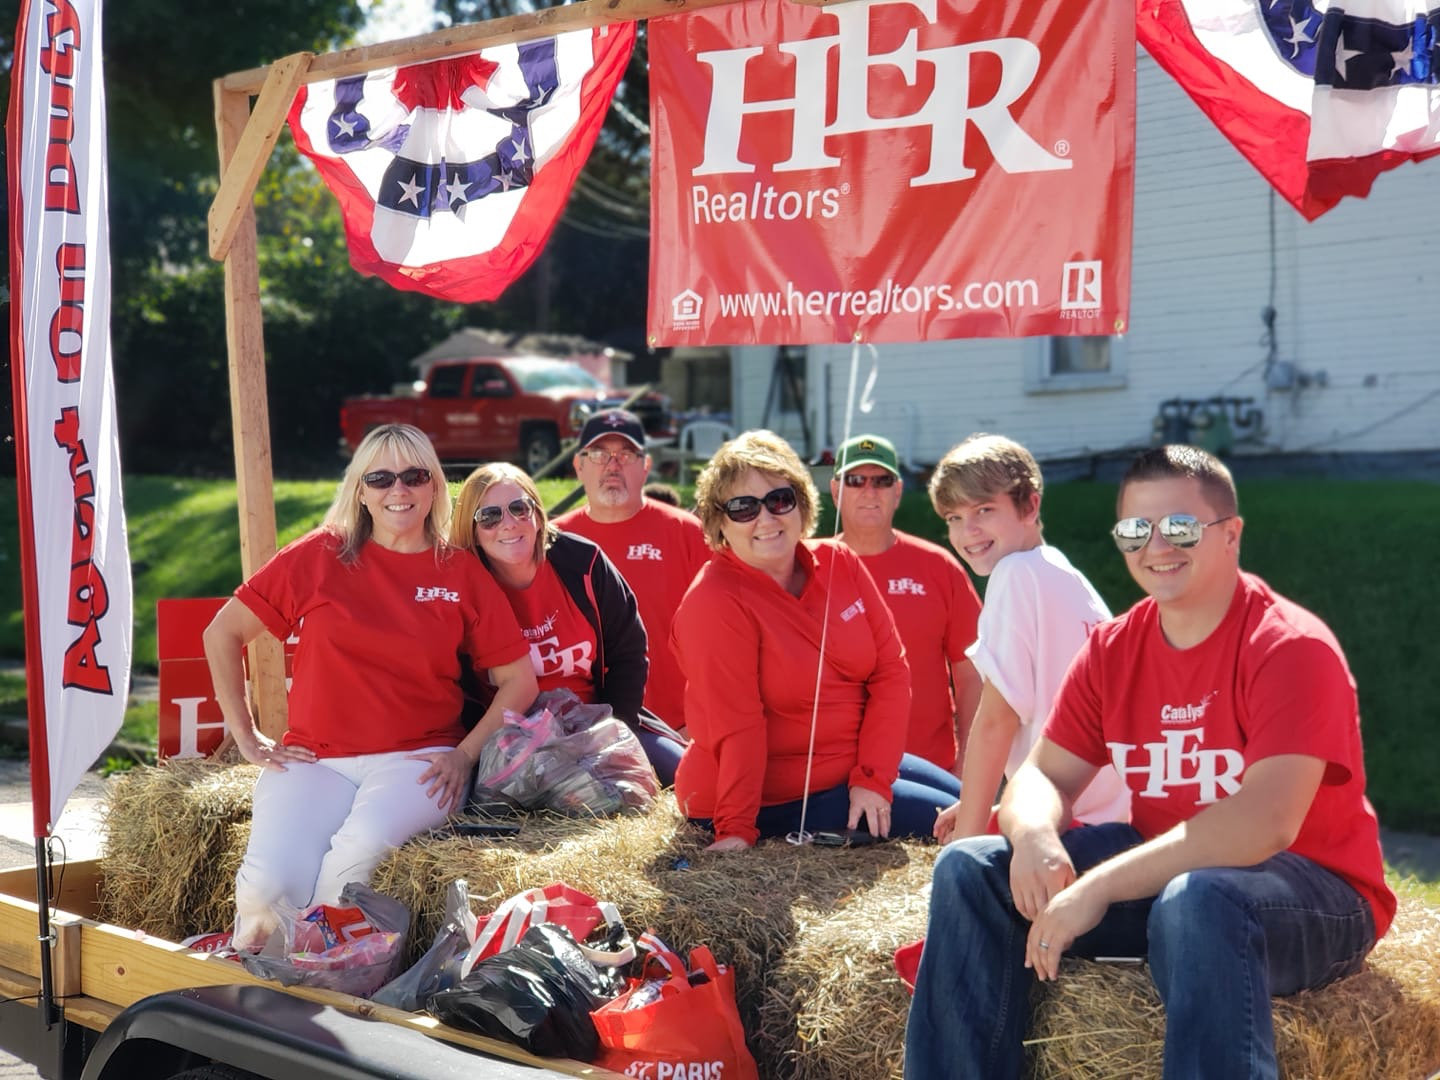 HER, REALTORS® agents clad in red at a brand picnic